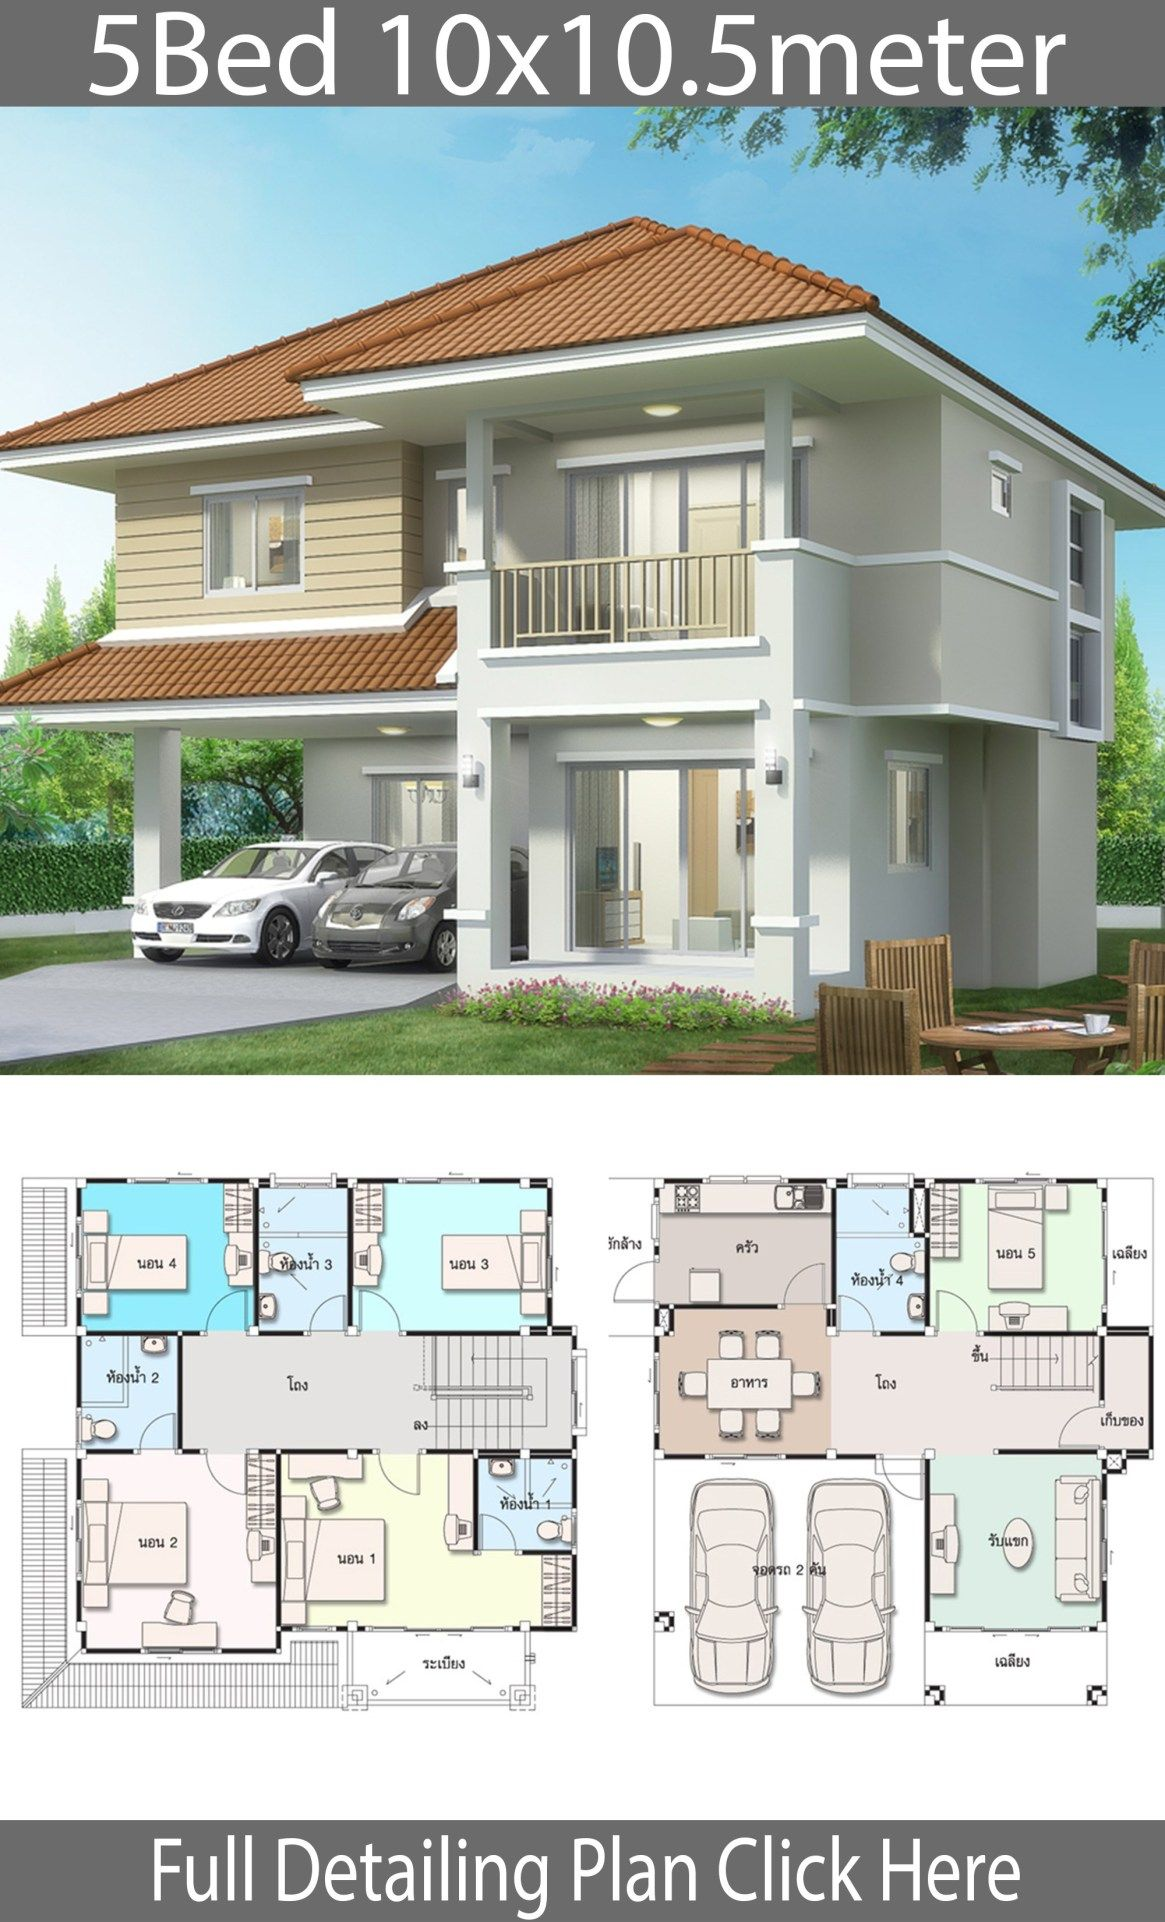 10x10 Room Design: House Design Plan 10x10.5m With 5 Bedrooms